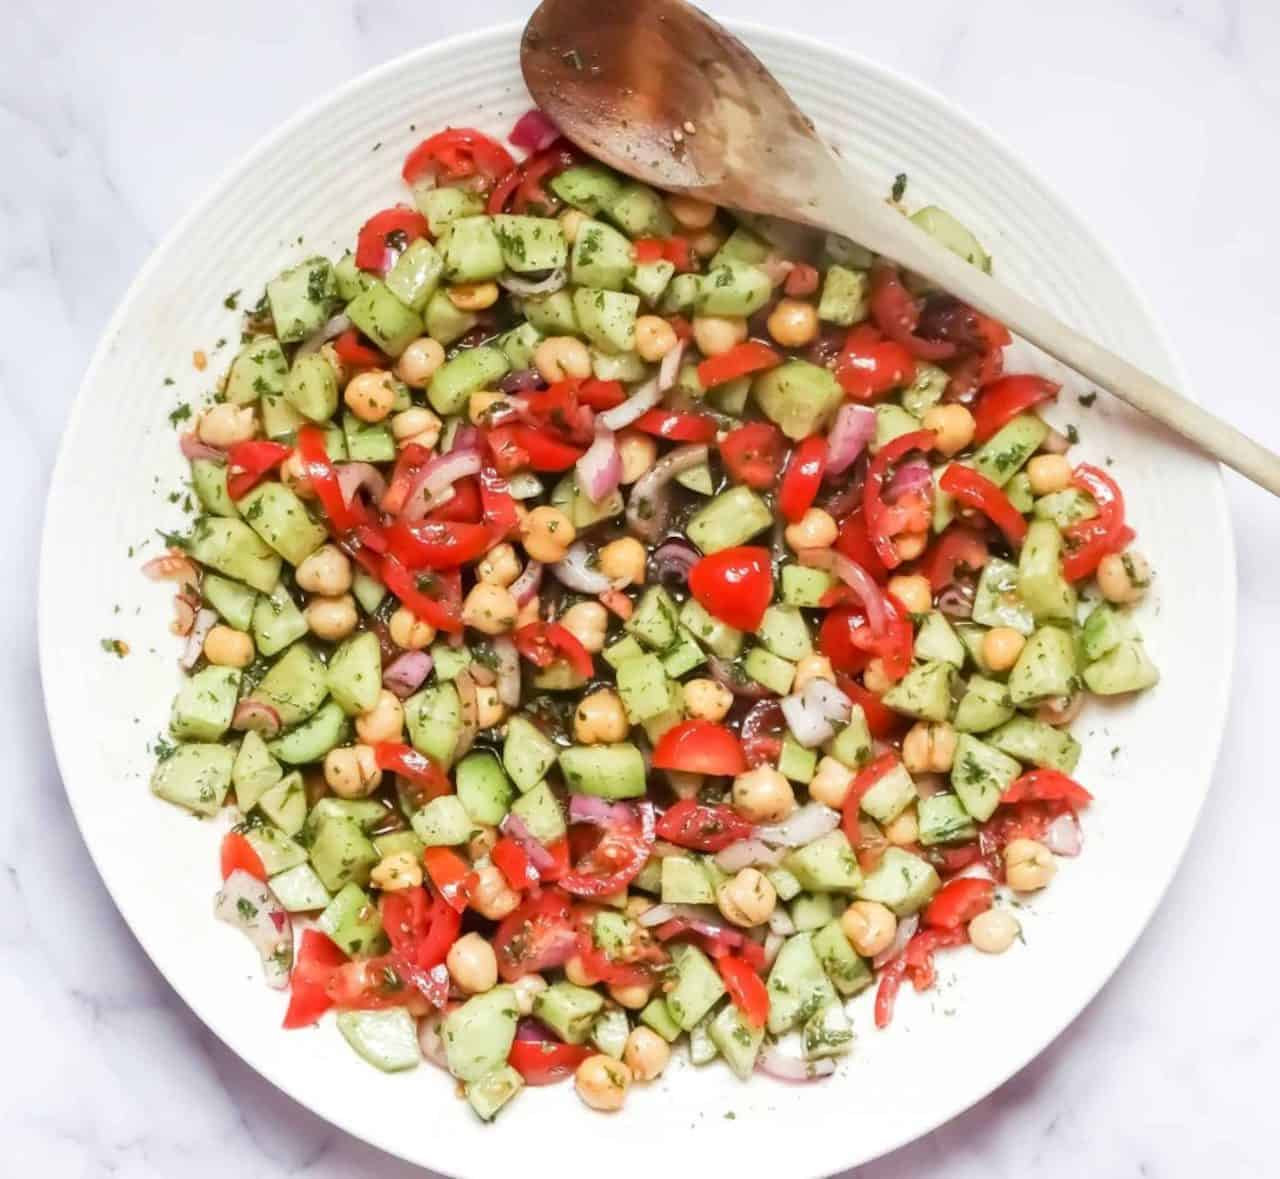 chickpeas, onions, tomatoes, and cucumber on a white plate mixed with balsamic dressing